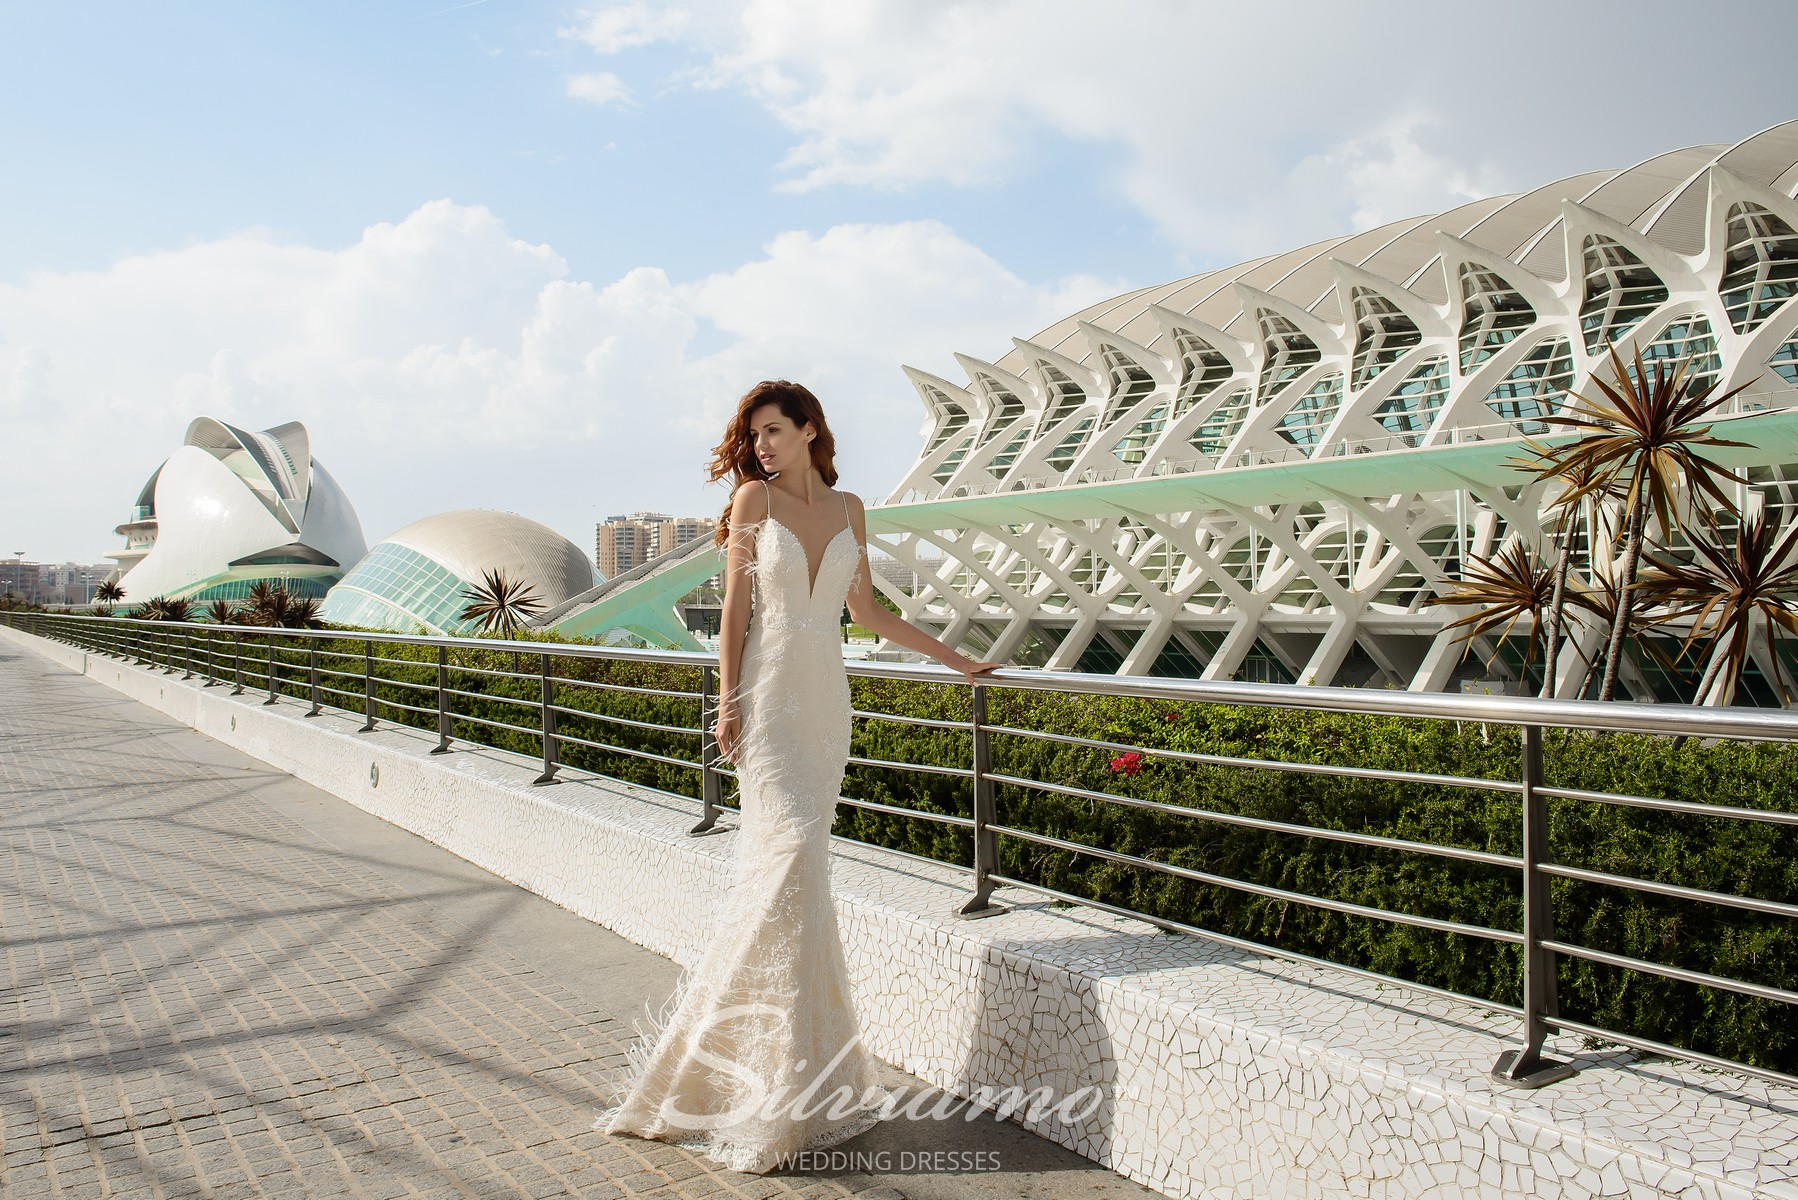 Wedding dresses of godet silhouette decorated with feathers on wholesale from Silviamo.-1